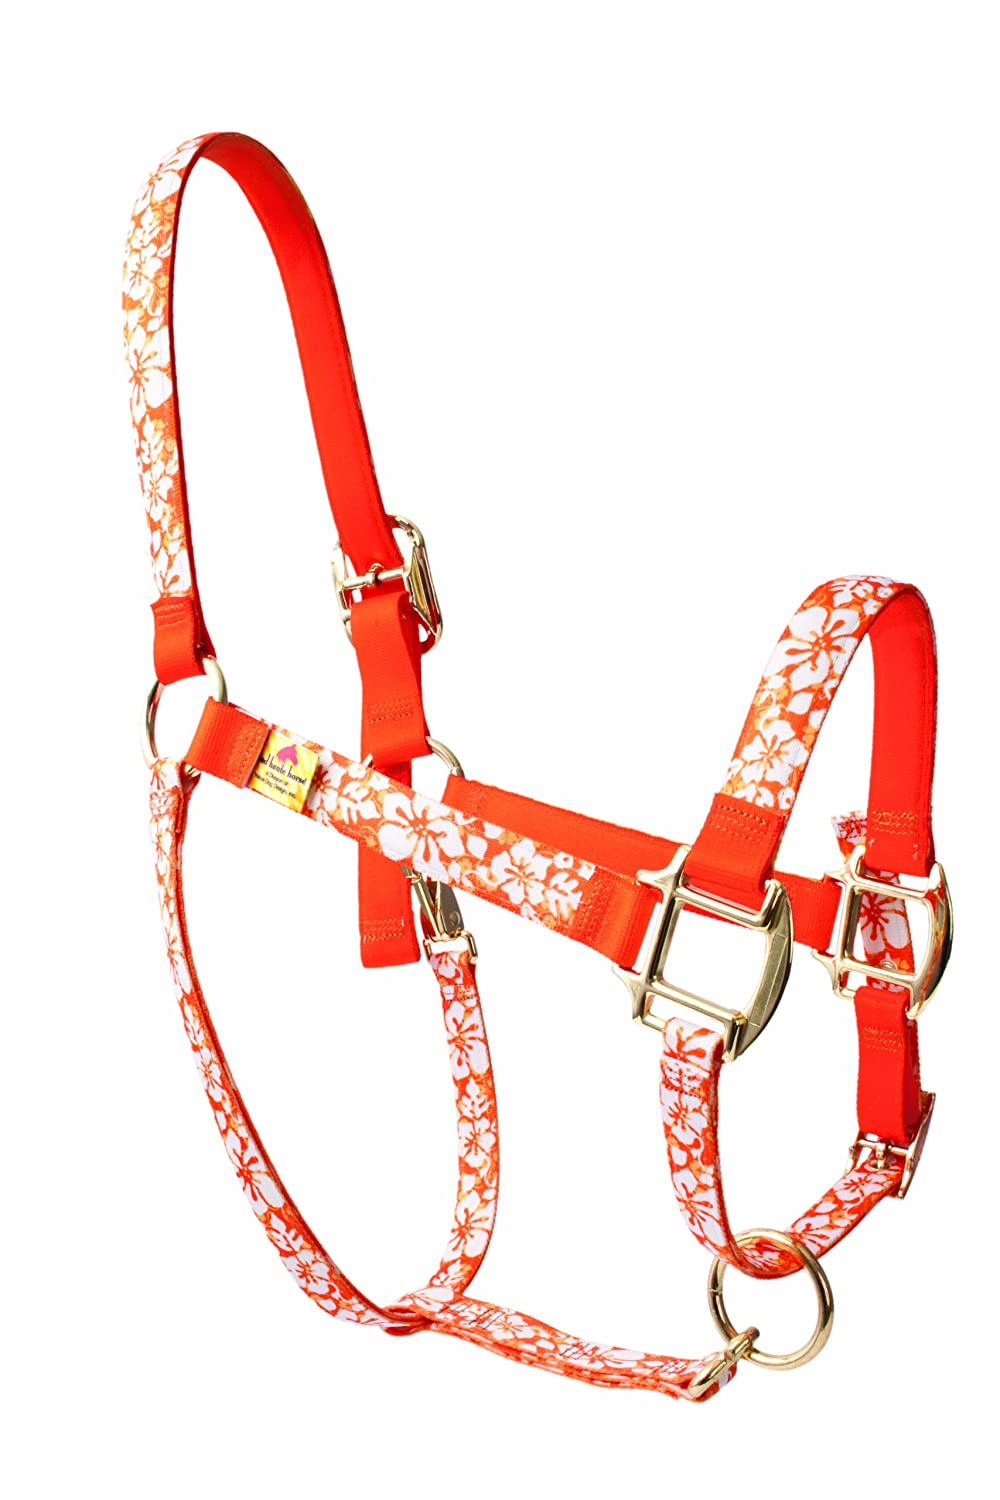 Red Haute Horse IFO1206D High Fashion Horse Horse Halter, Island Floral orange